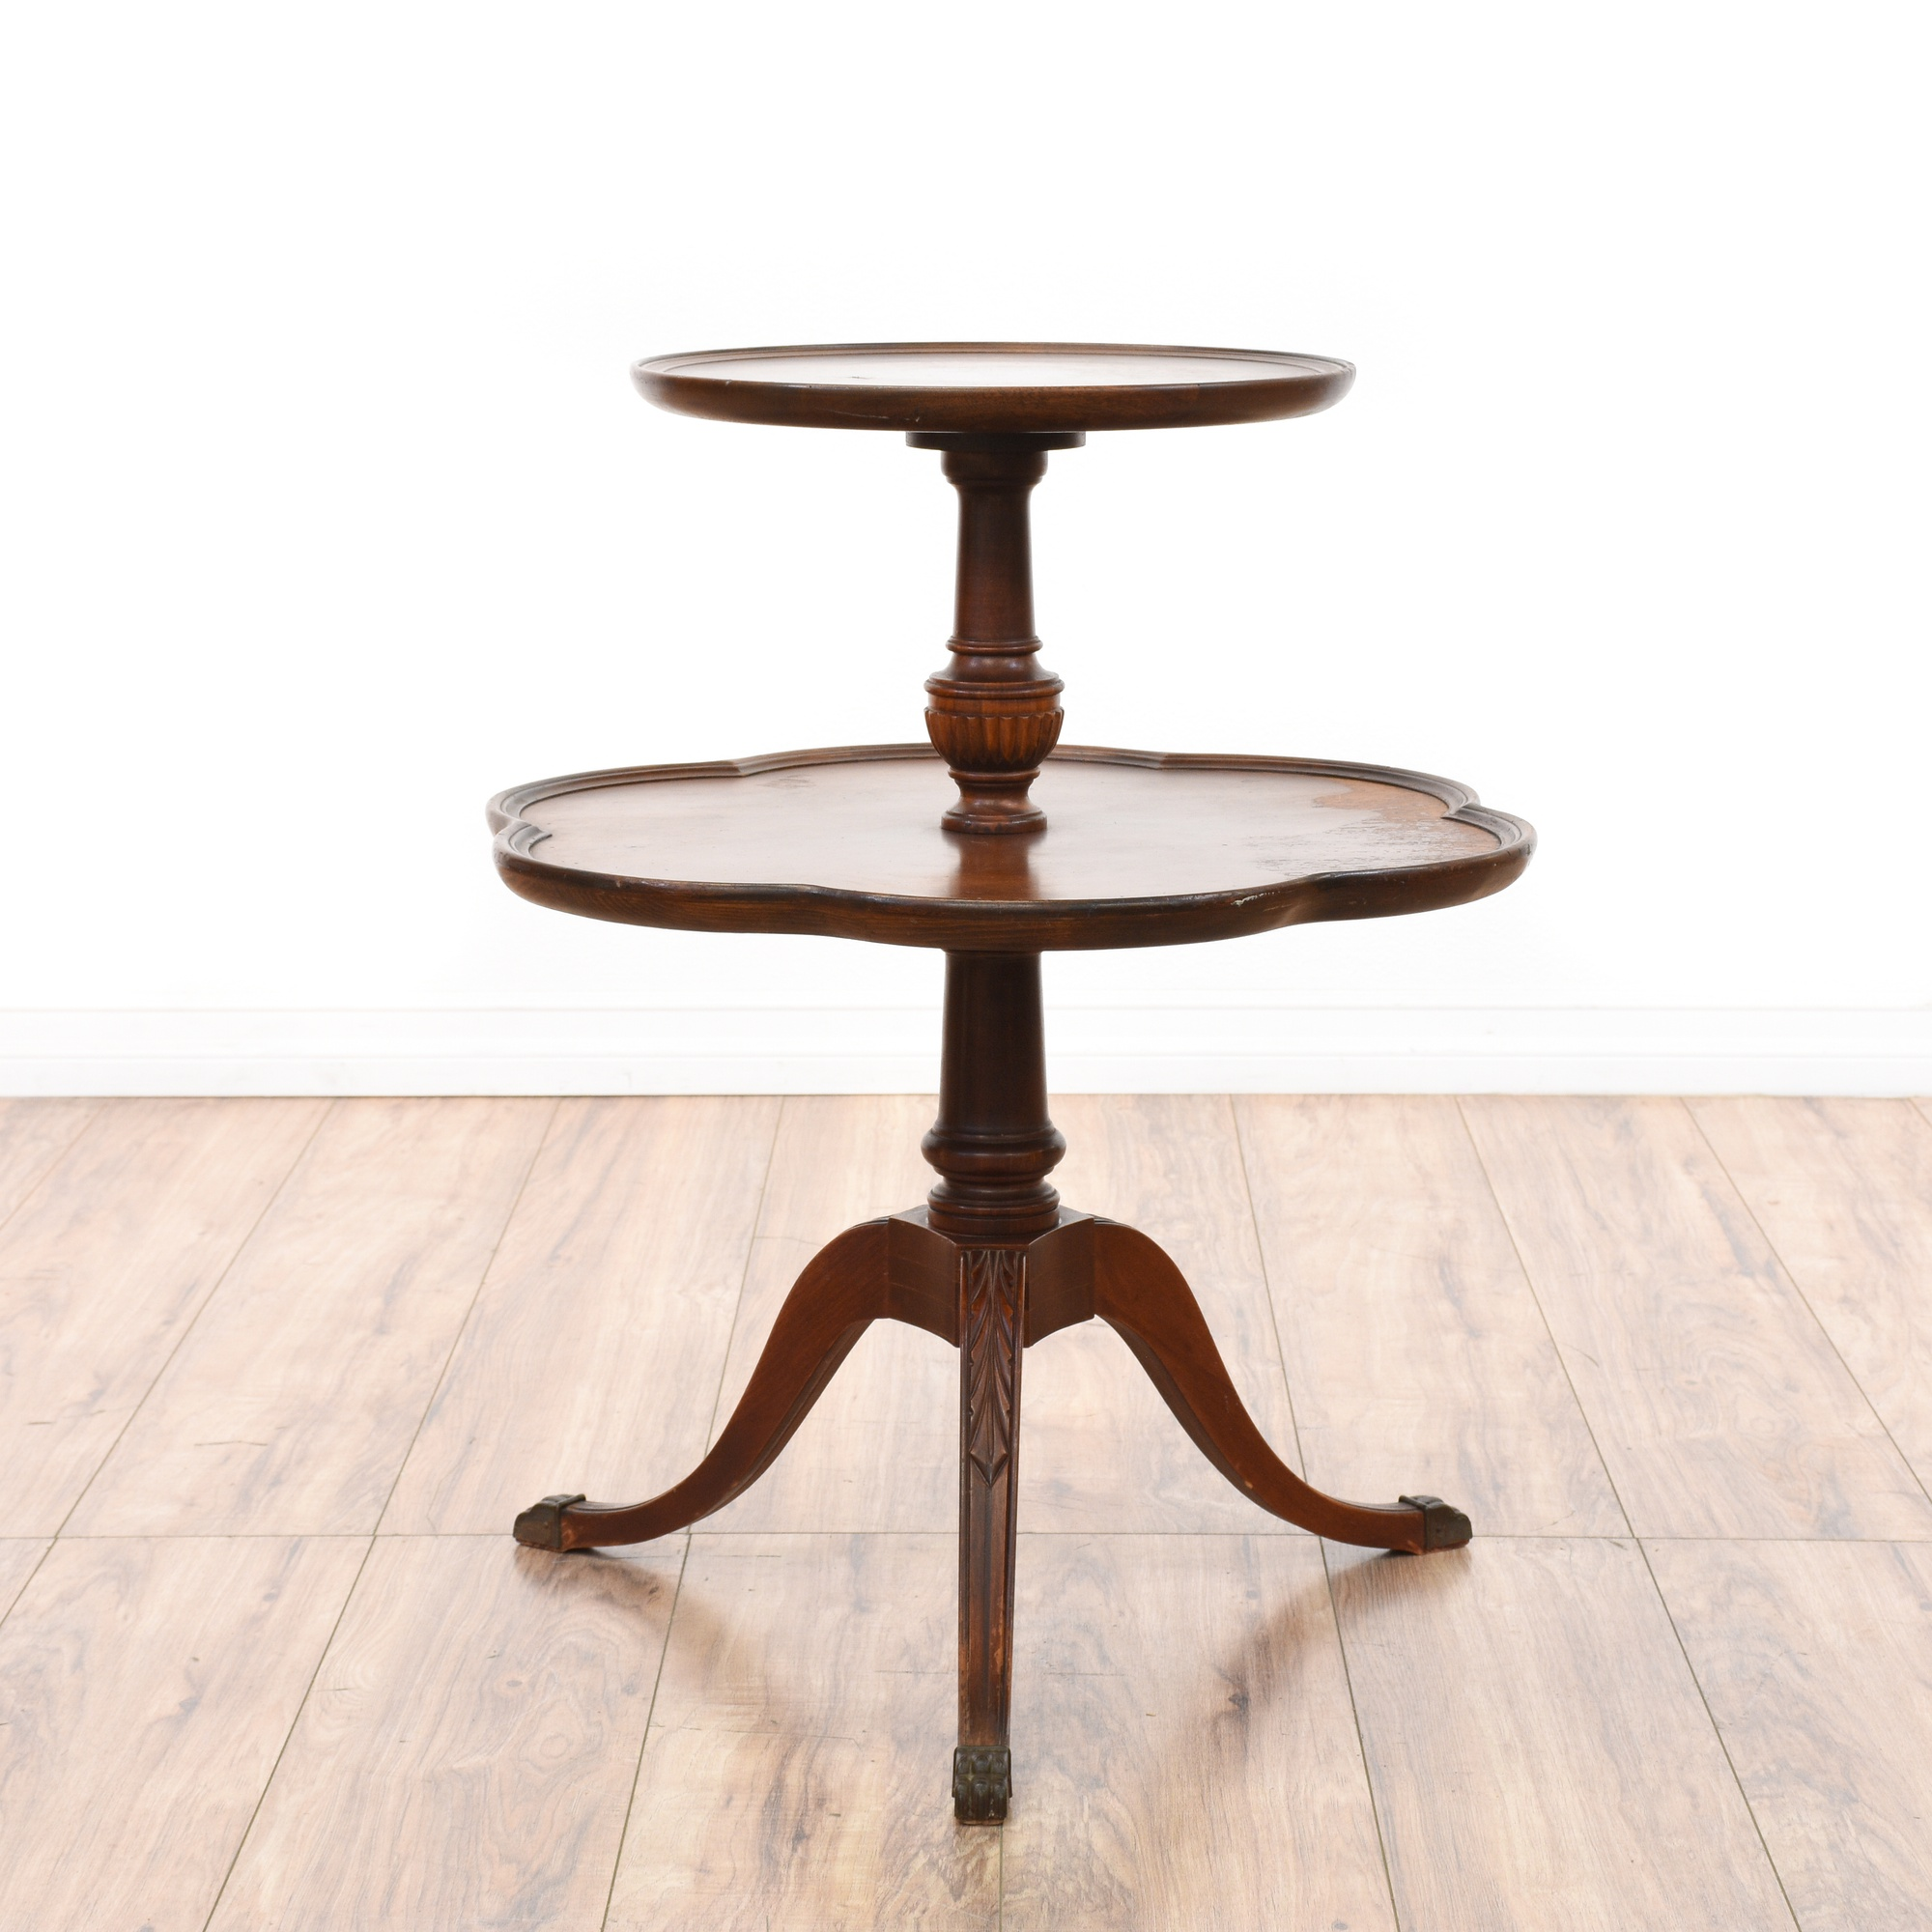 Quot Mersman Quot Duncan Phyfe Tiered Side Table Loveseat